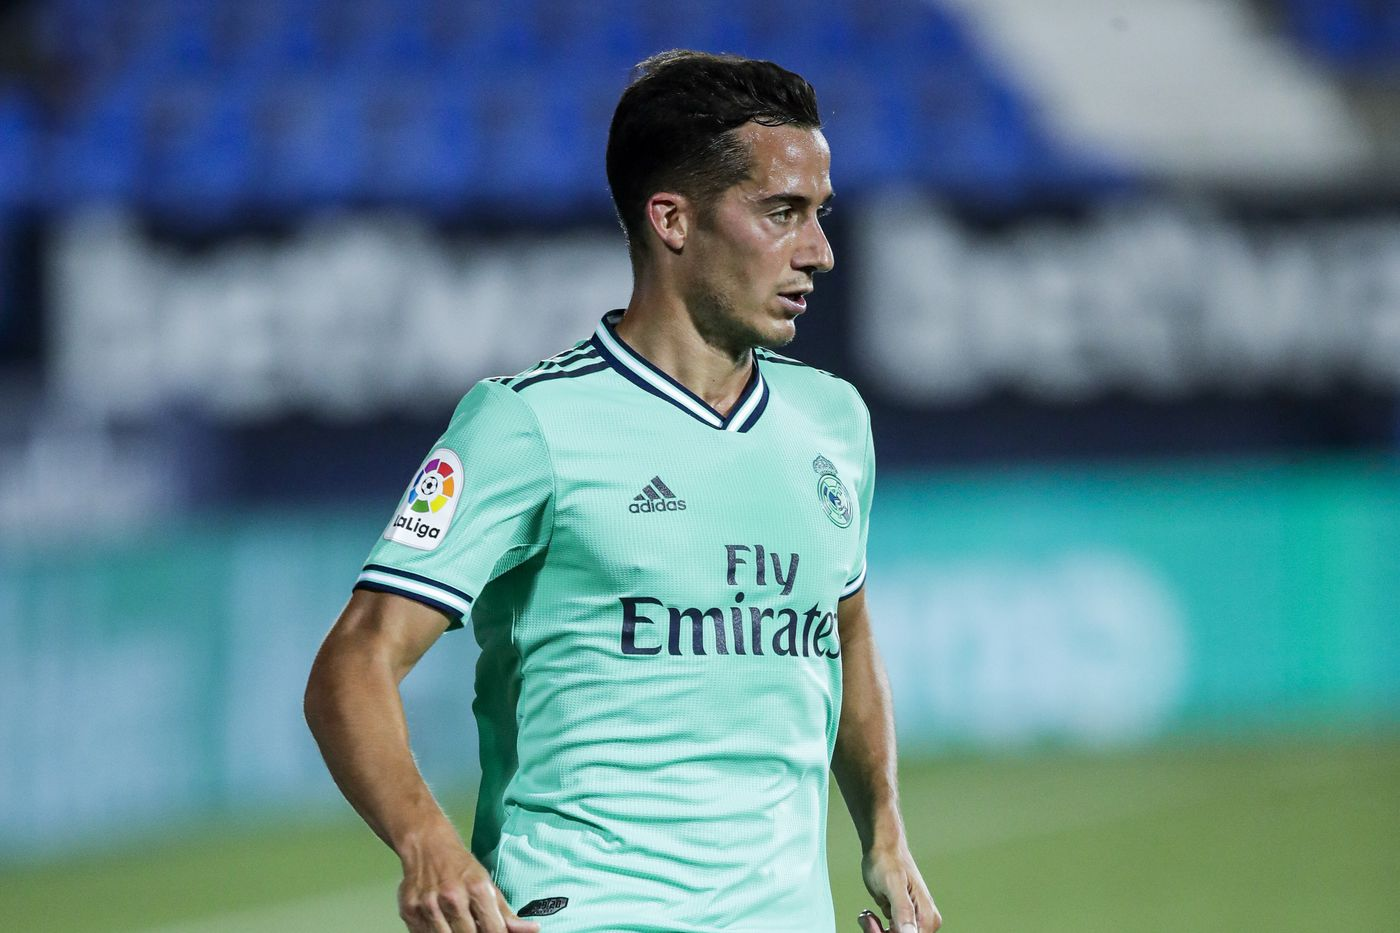 colina Calvo En riesgo  Lucas Vazquez considering offer from Qatar to leave Real Madrid -report -  Managing Madrid